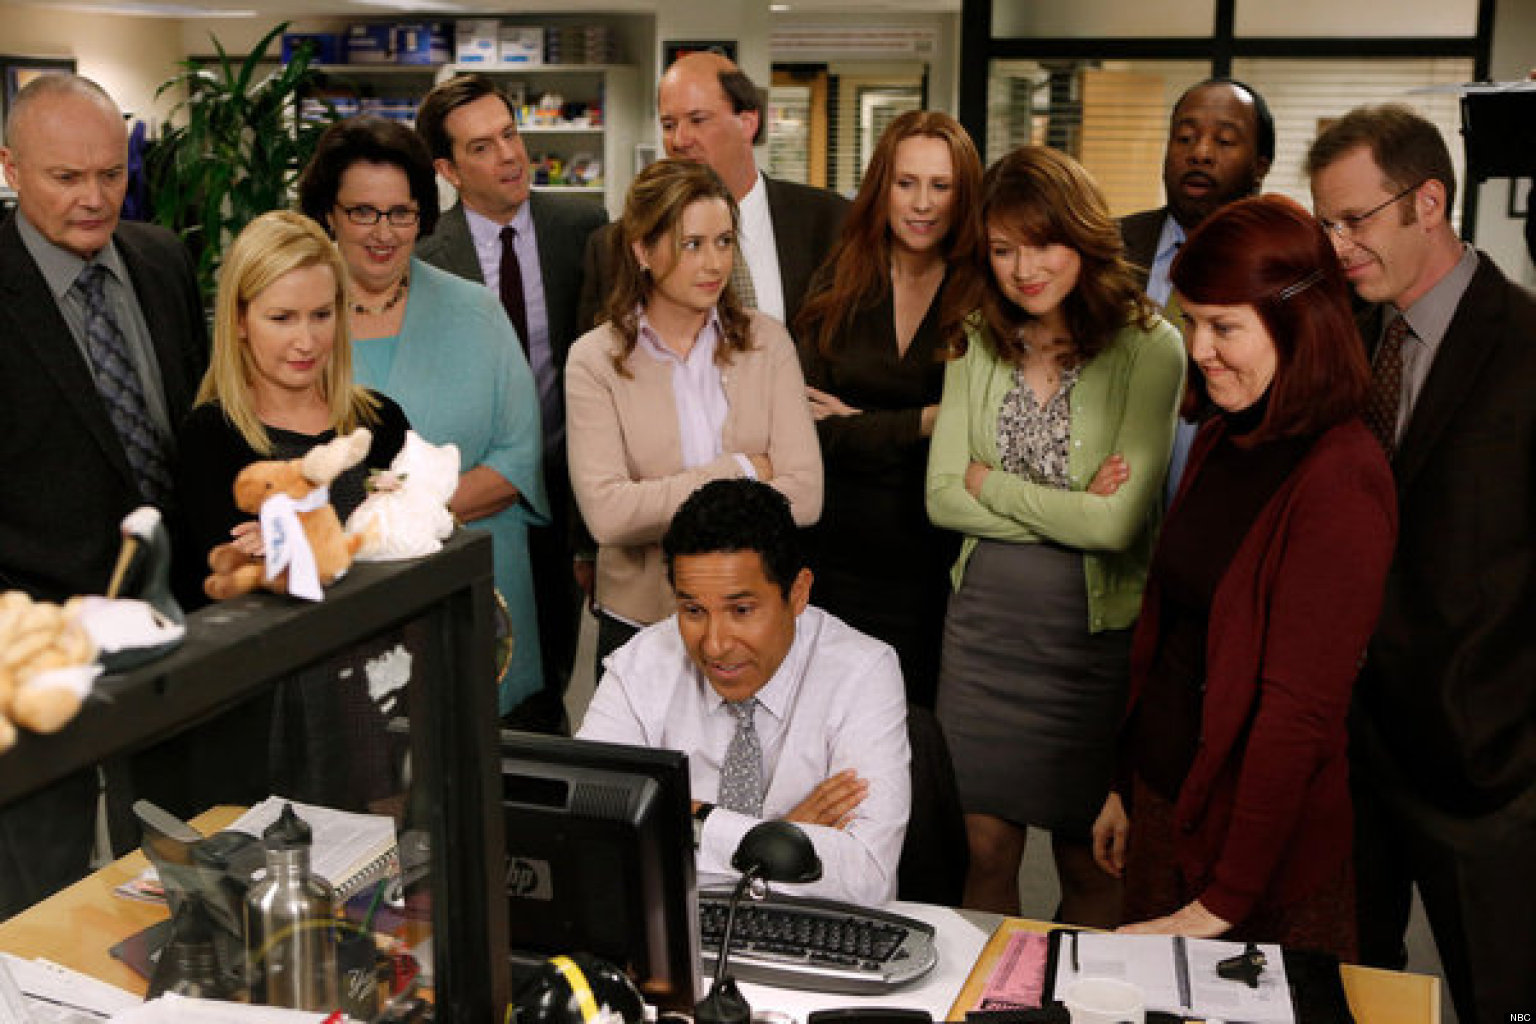 39 the office 39 finale cast preview 39 big 39 39 emotional 39 ending that will make you 39 laugh and cry - The office season 9 finale ...